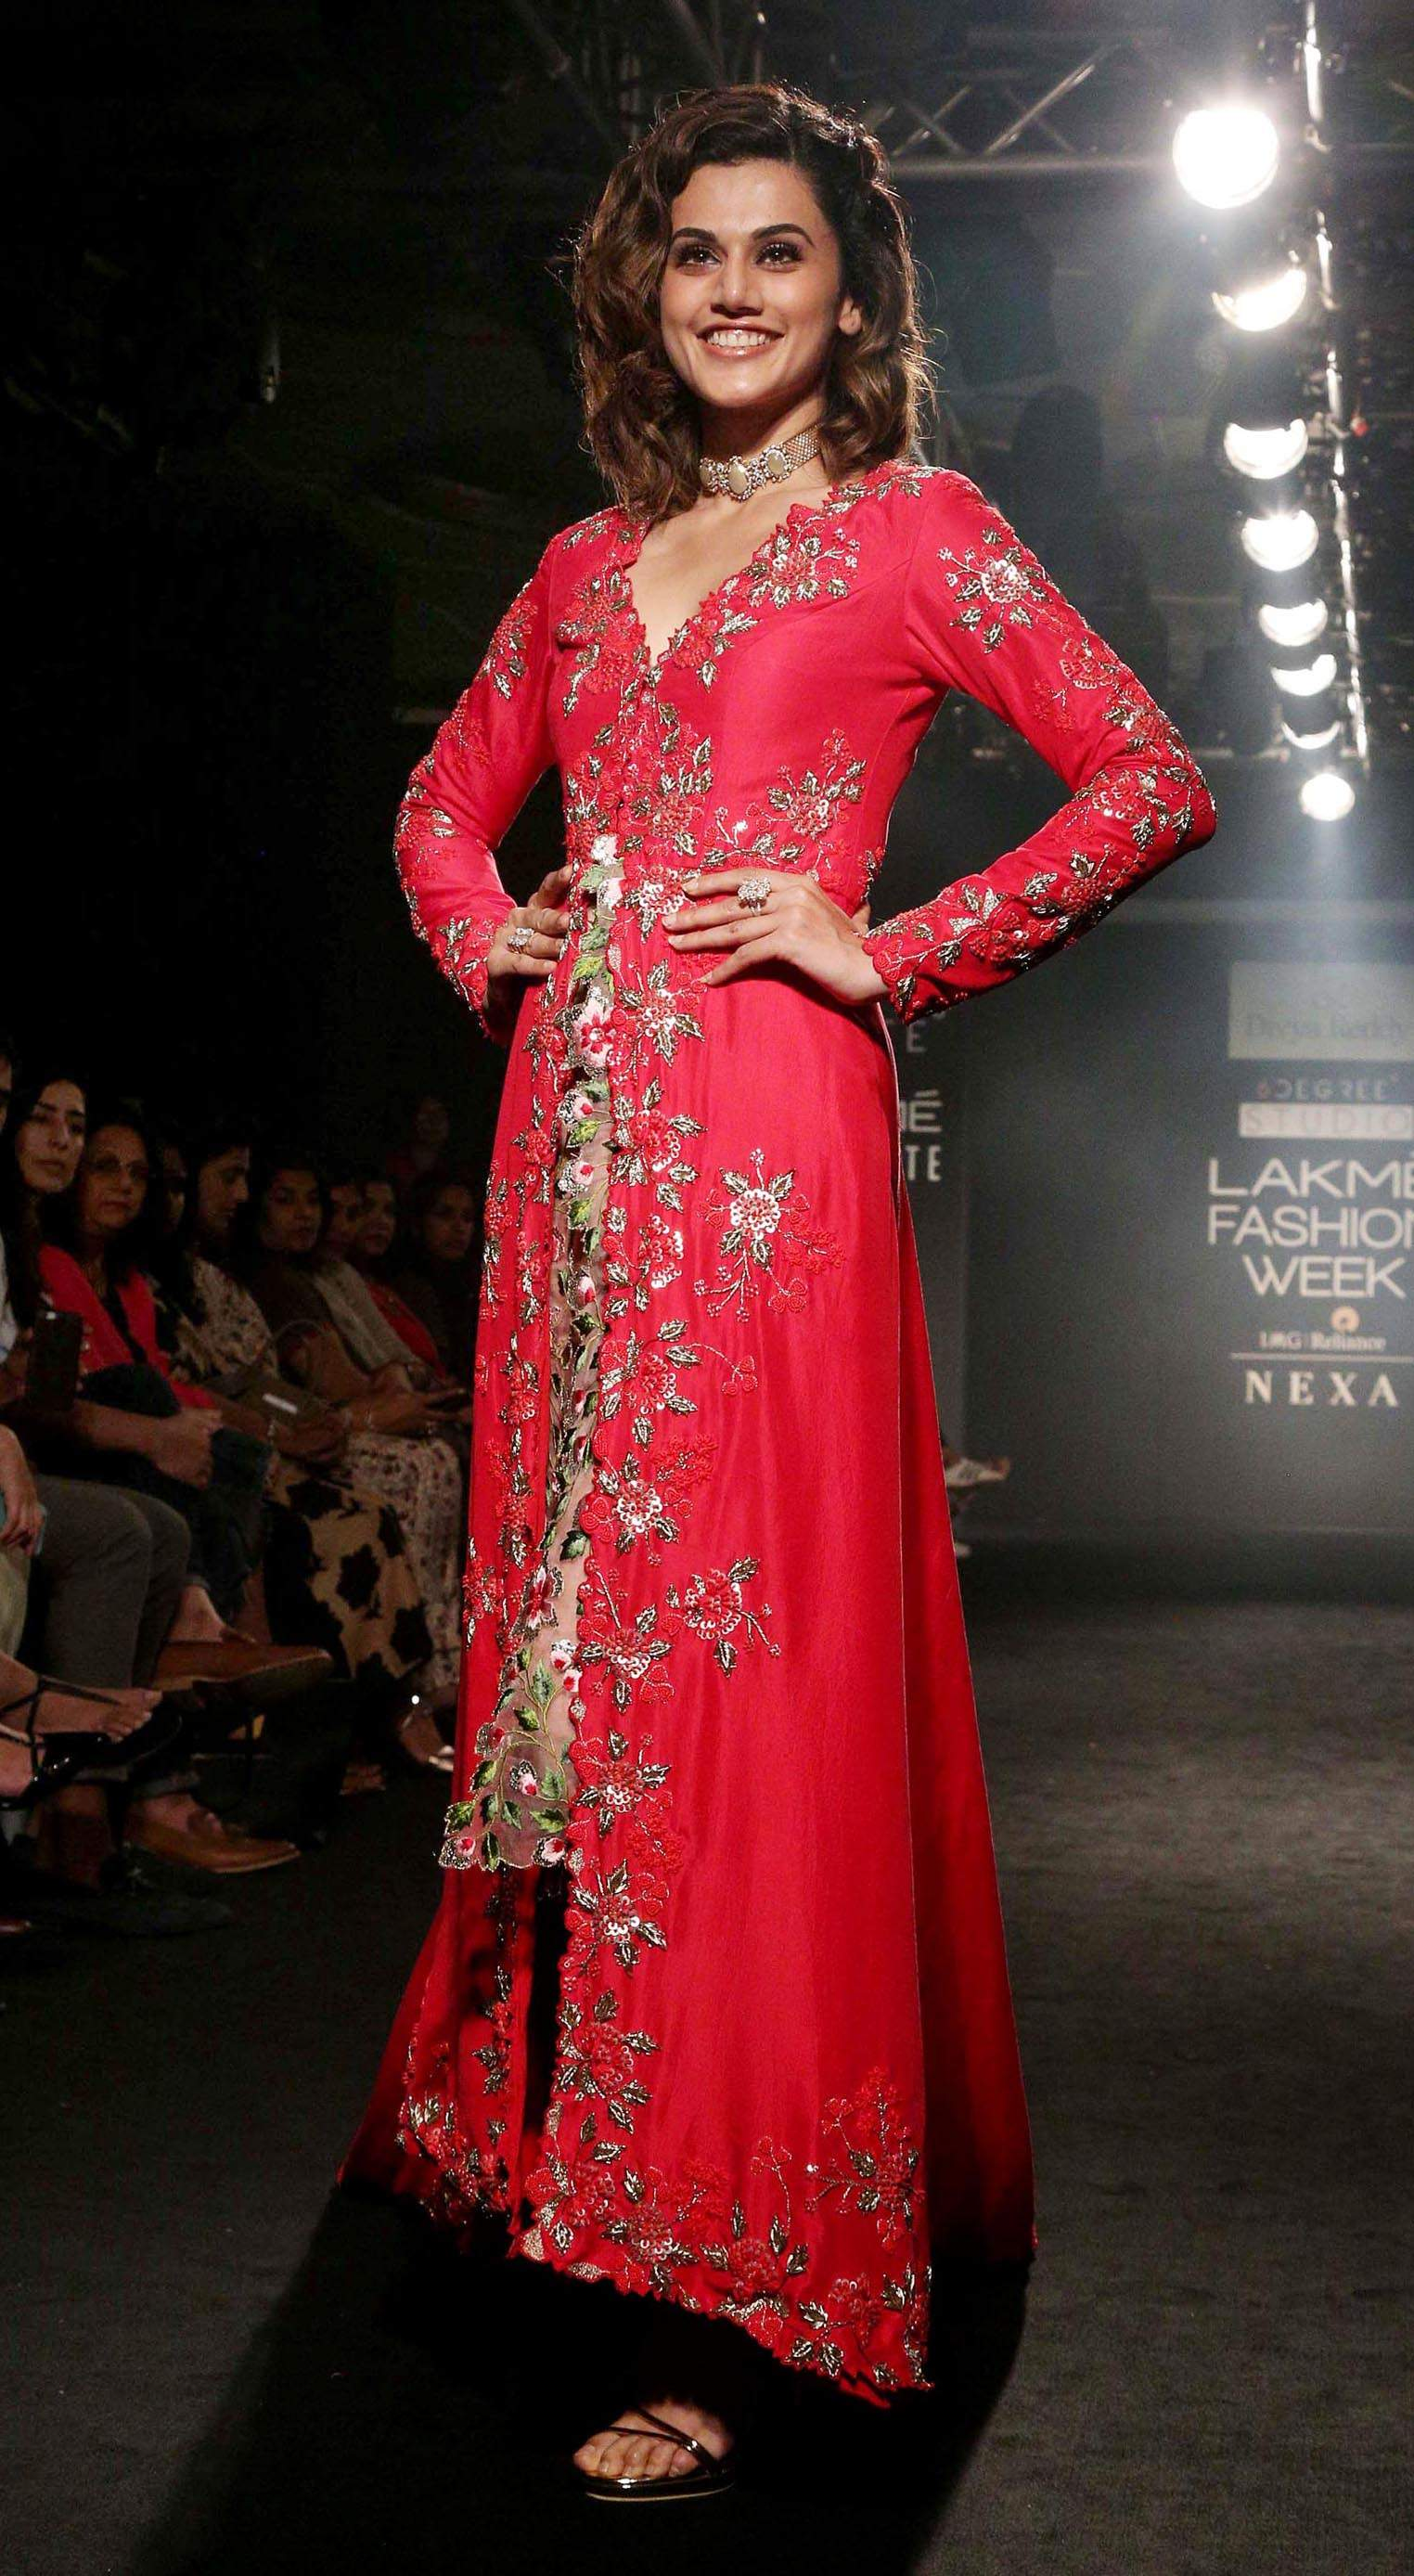 5 Fashion Trends For Fall 2013 From Berlin: Day 5 At Lakmé Fashion Week